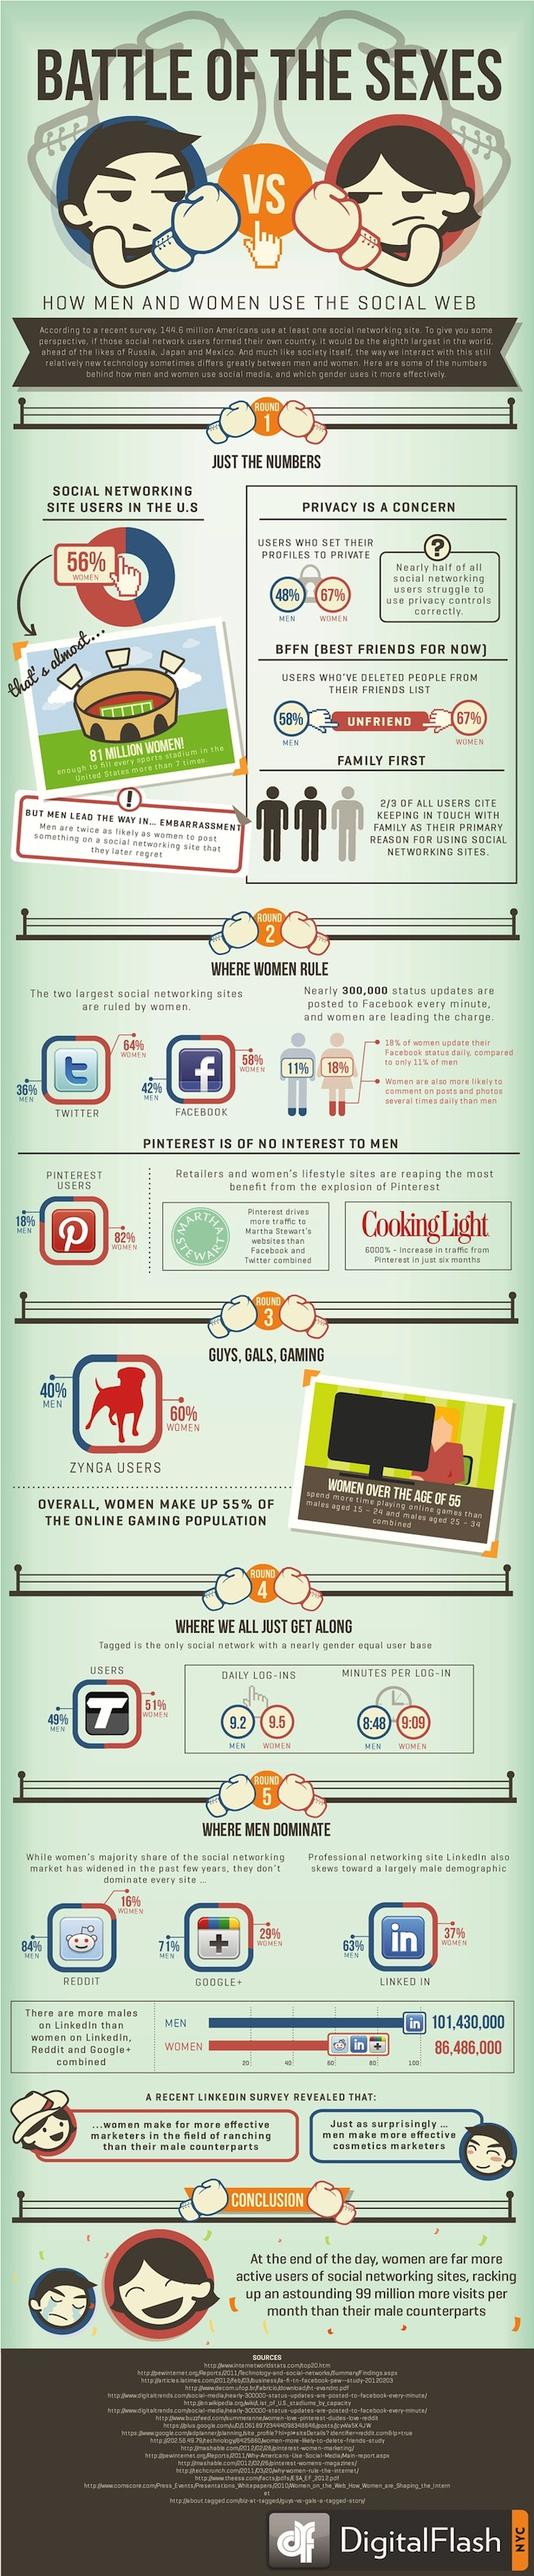 pinterest traffic male vs female